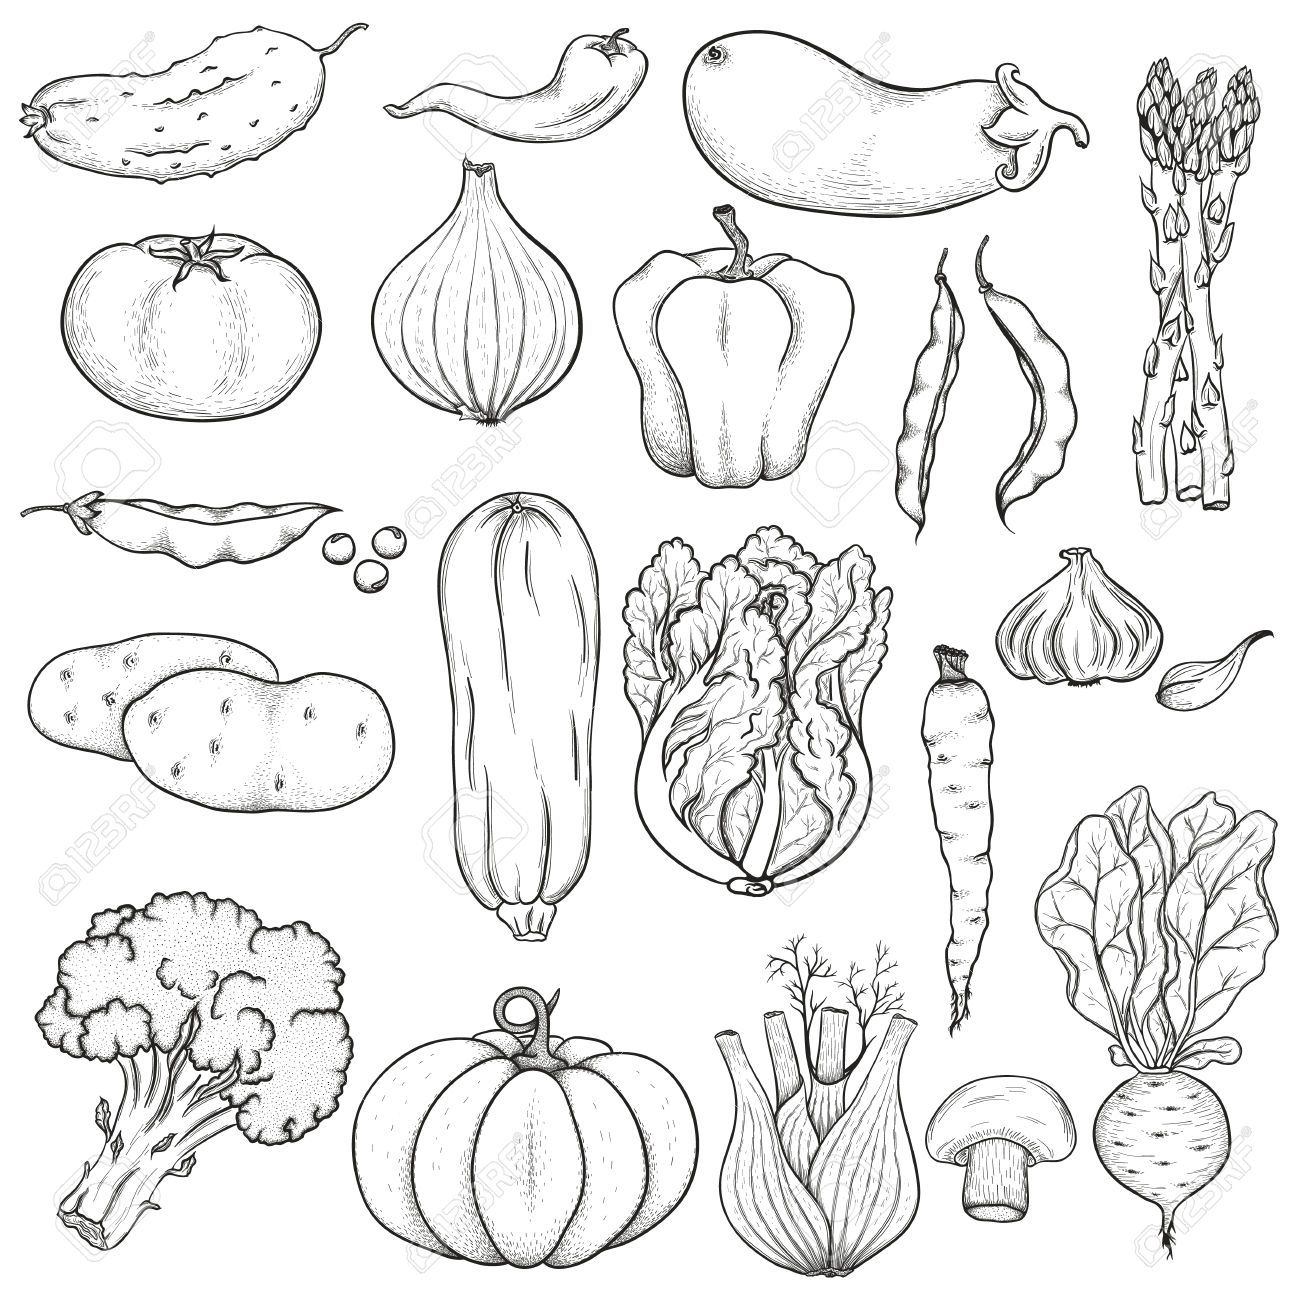 Clipart Vegetables Black And White